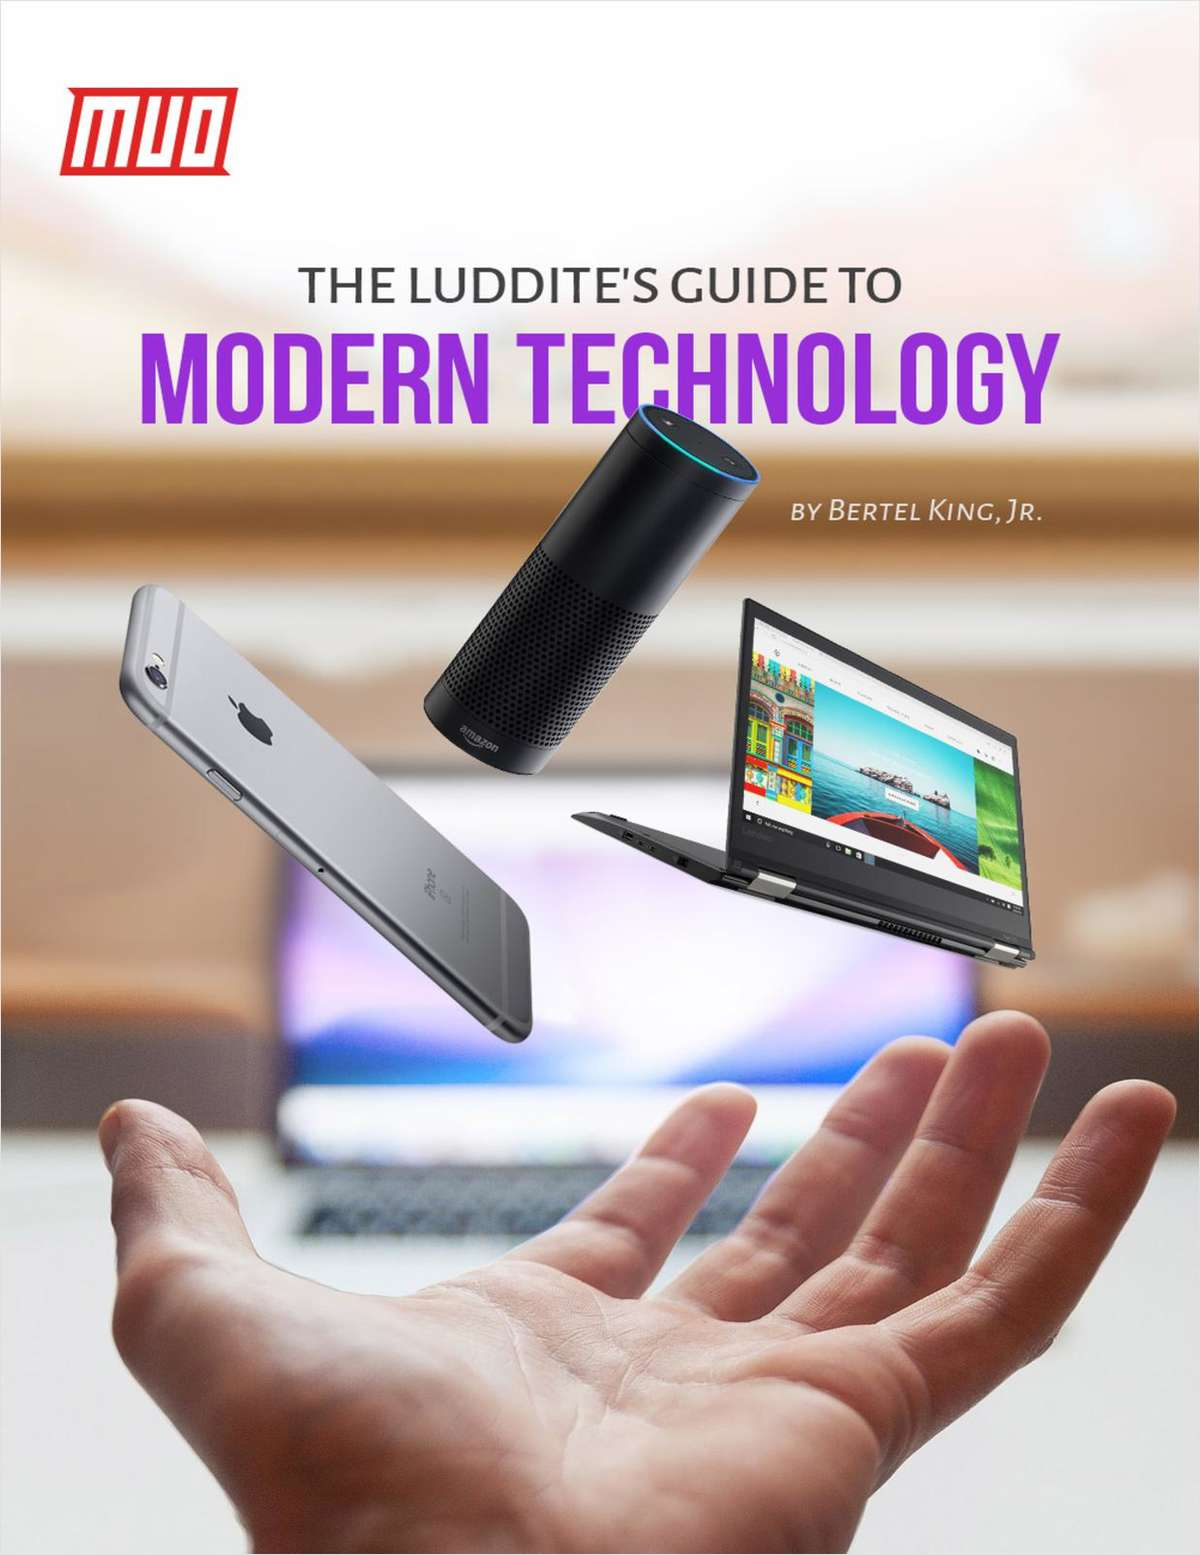 The Luddite's Guide to Modern Technology